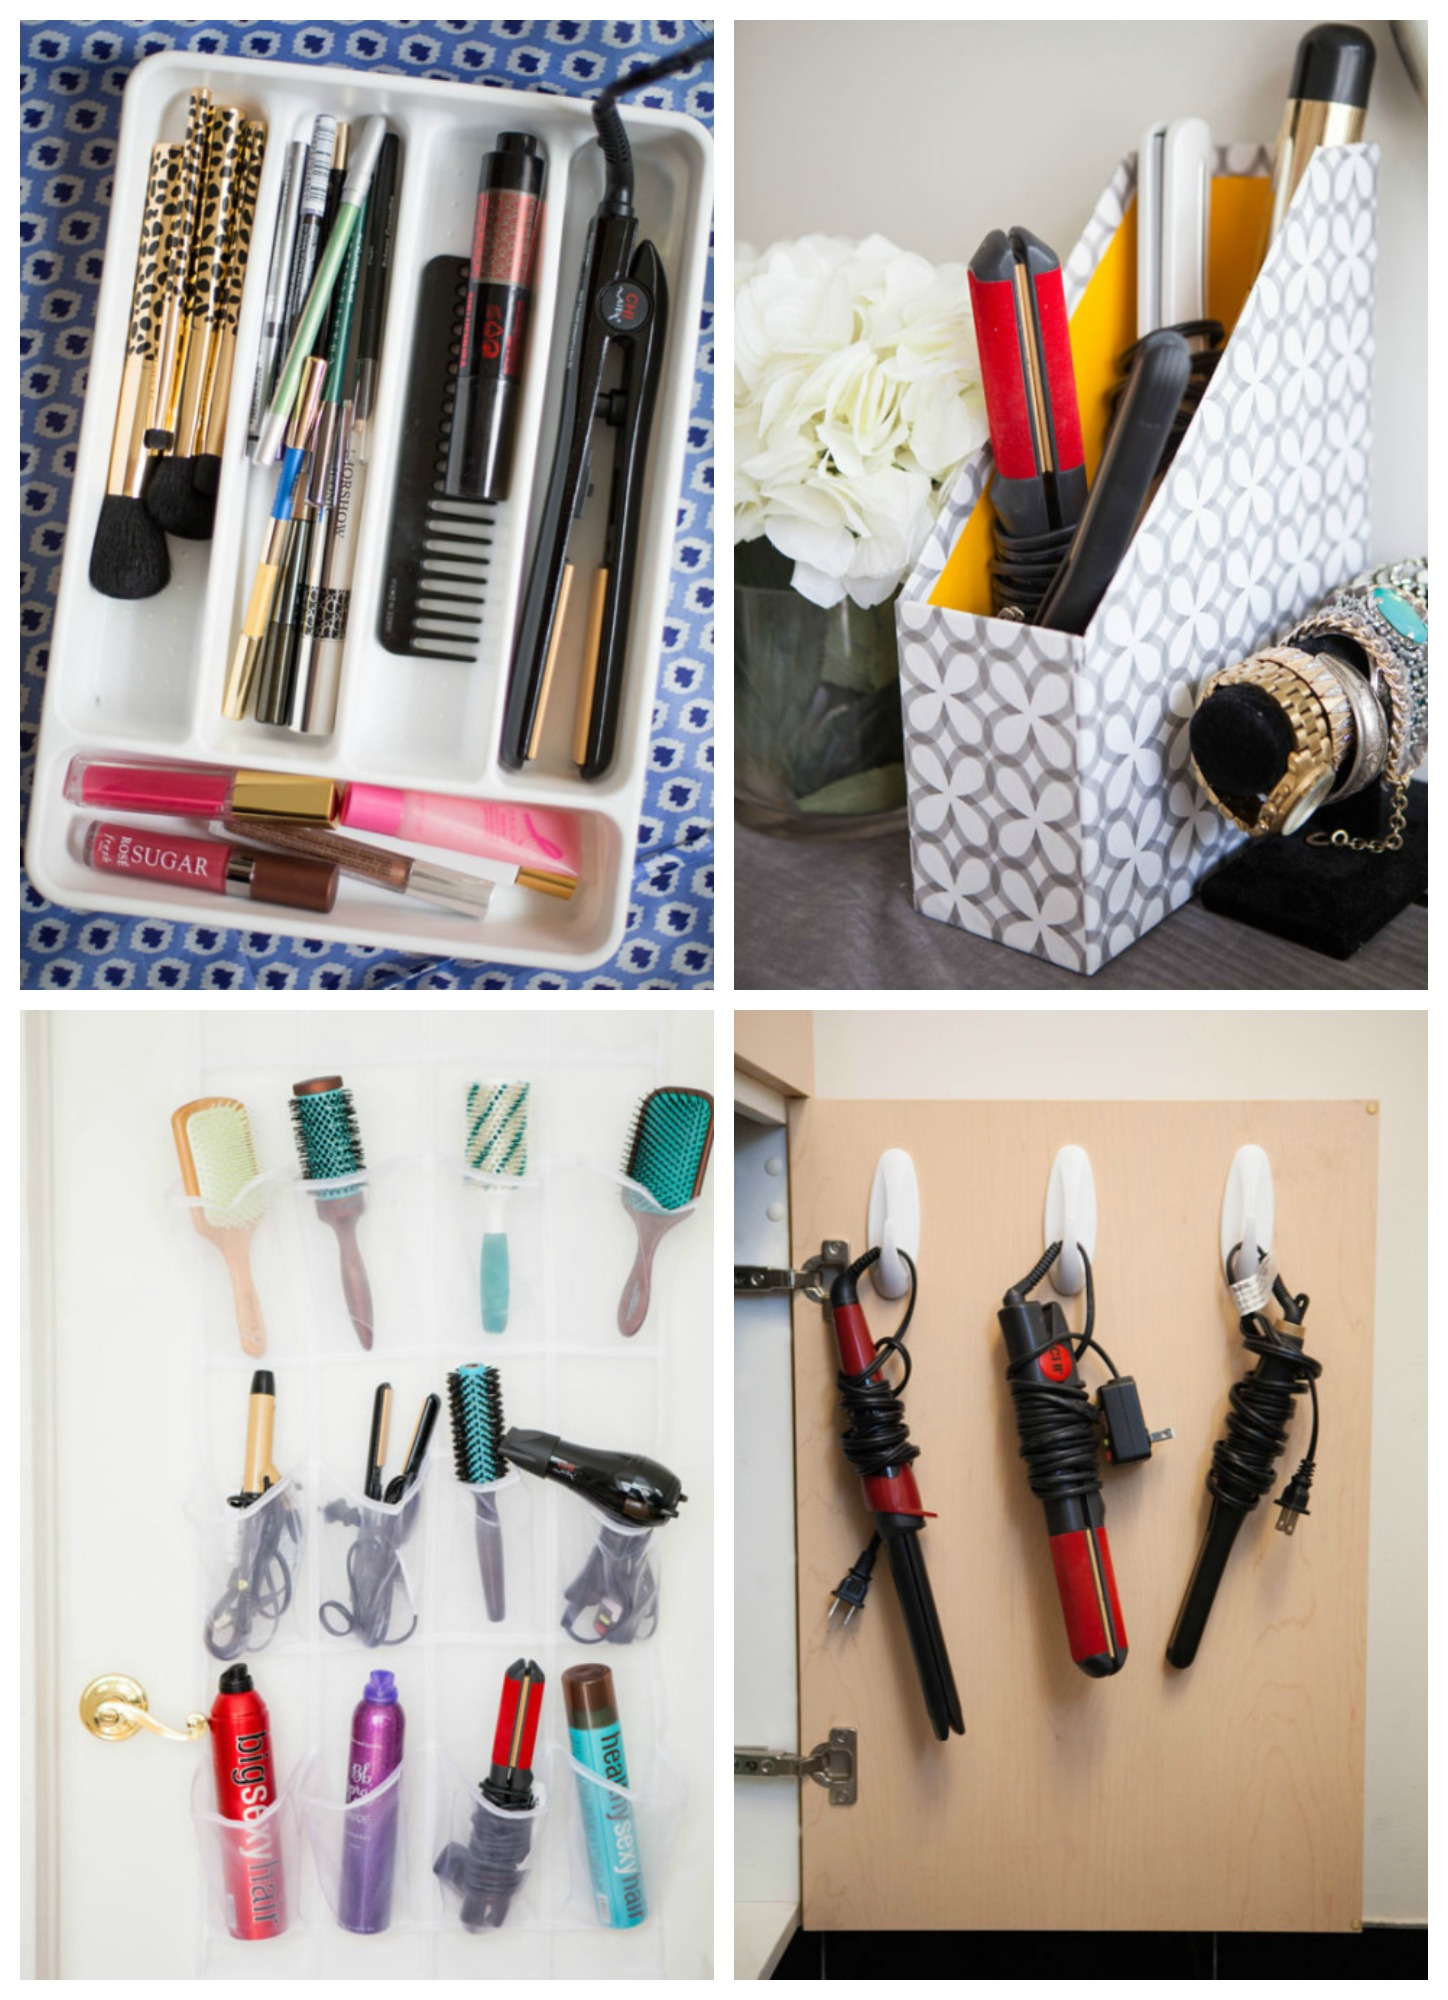 Bathroom organizers ideas - Organizing For The Home 30 Ideas Tips Tricks To Help Organize Bathroom Storage Ideas Via Cosmopolitan